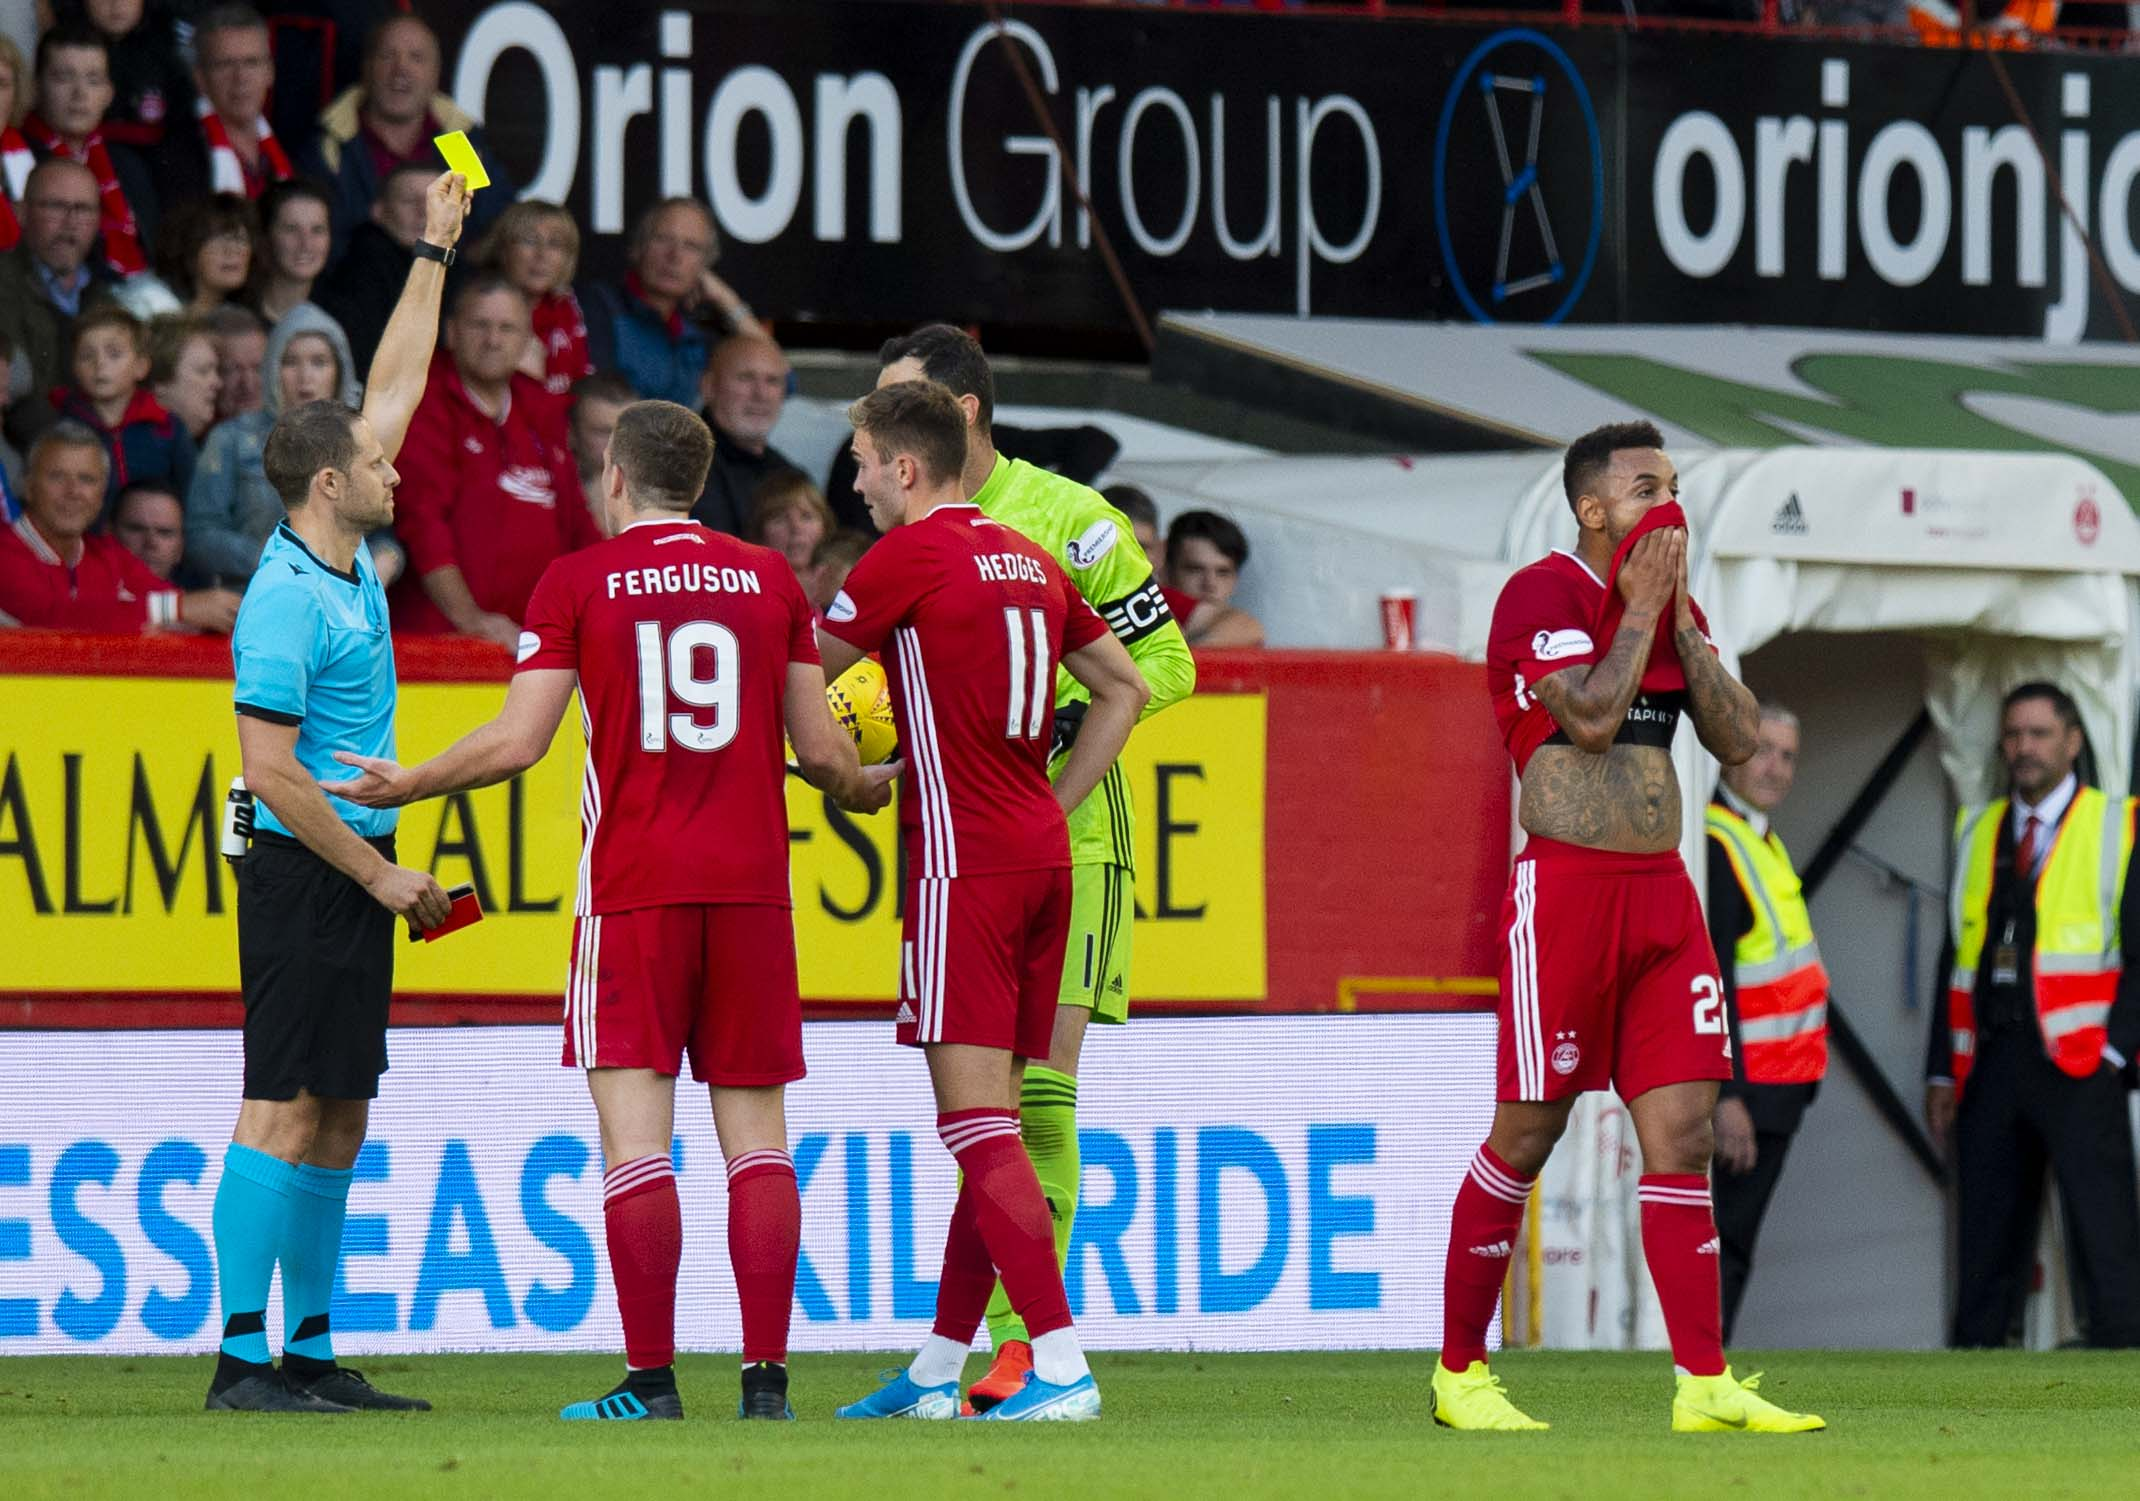 Aberdeen's Funso Ojo leaves the pitch after being red carded whilst team mate Joe Lewis is yellow carded for dissent